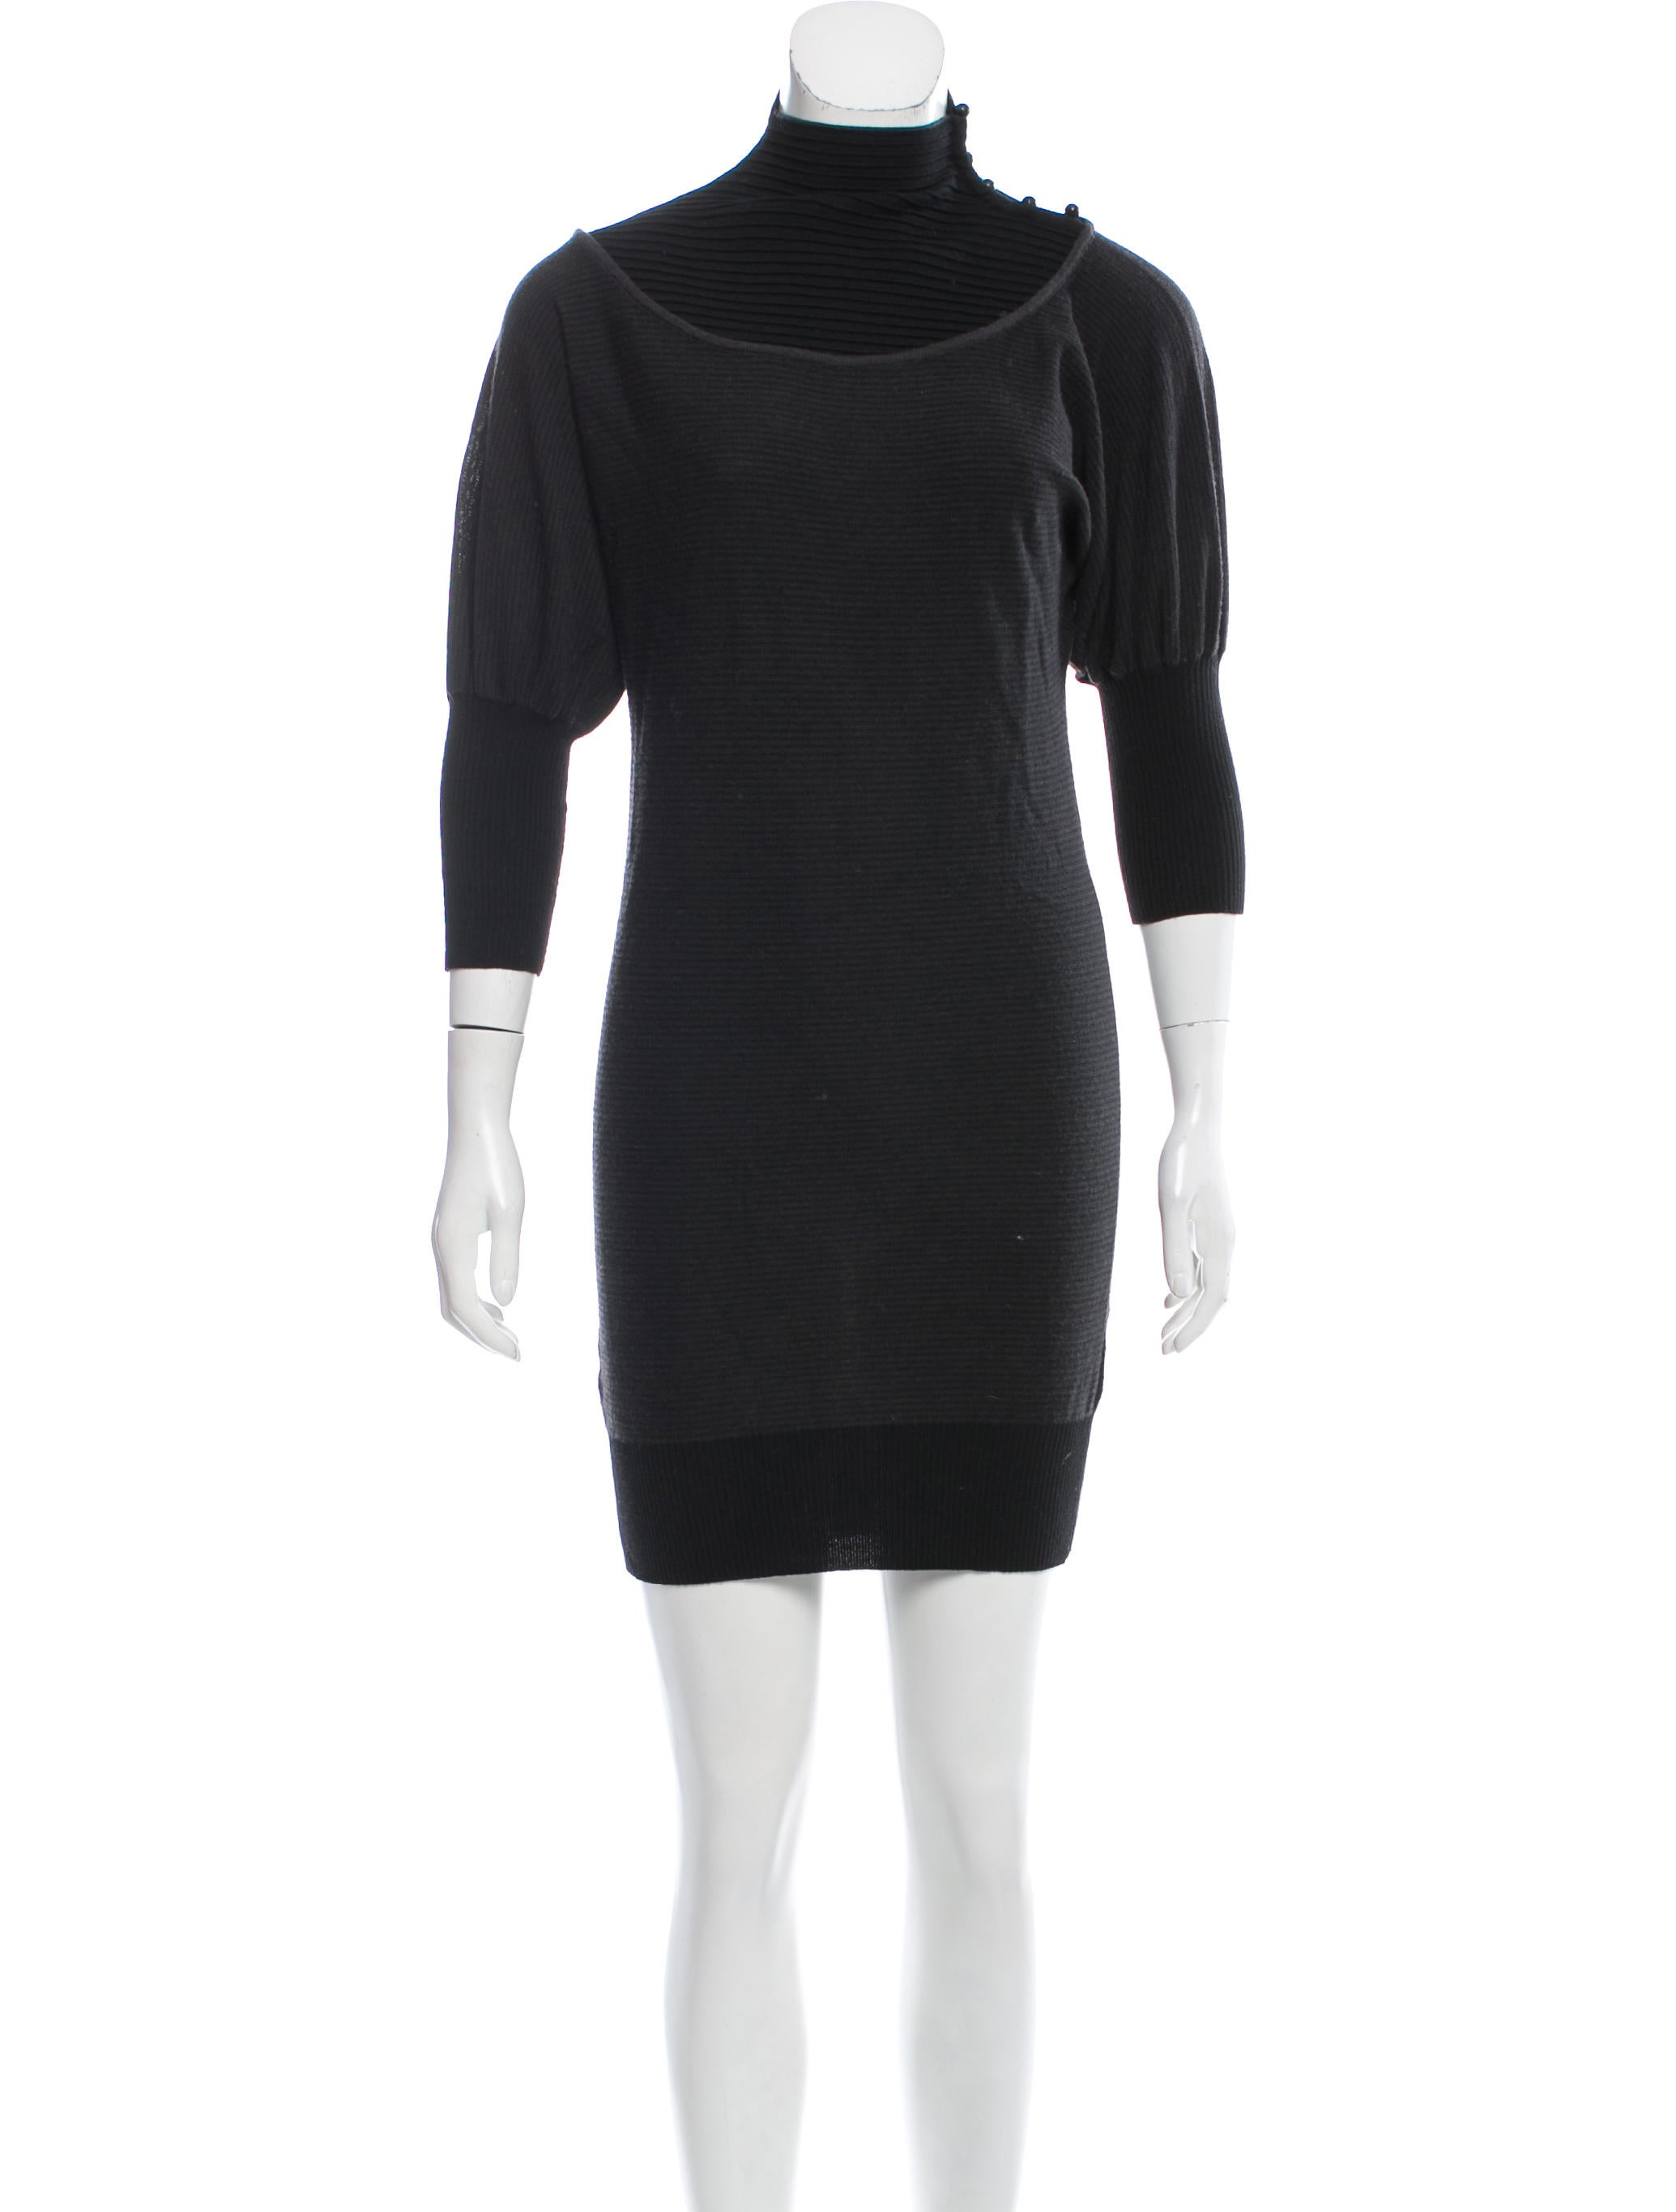 Fendi Wool Sweater Dress - Clothing - FEN60994 | The RealReal